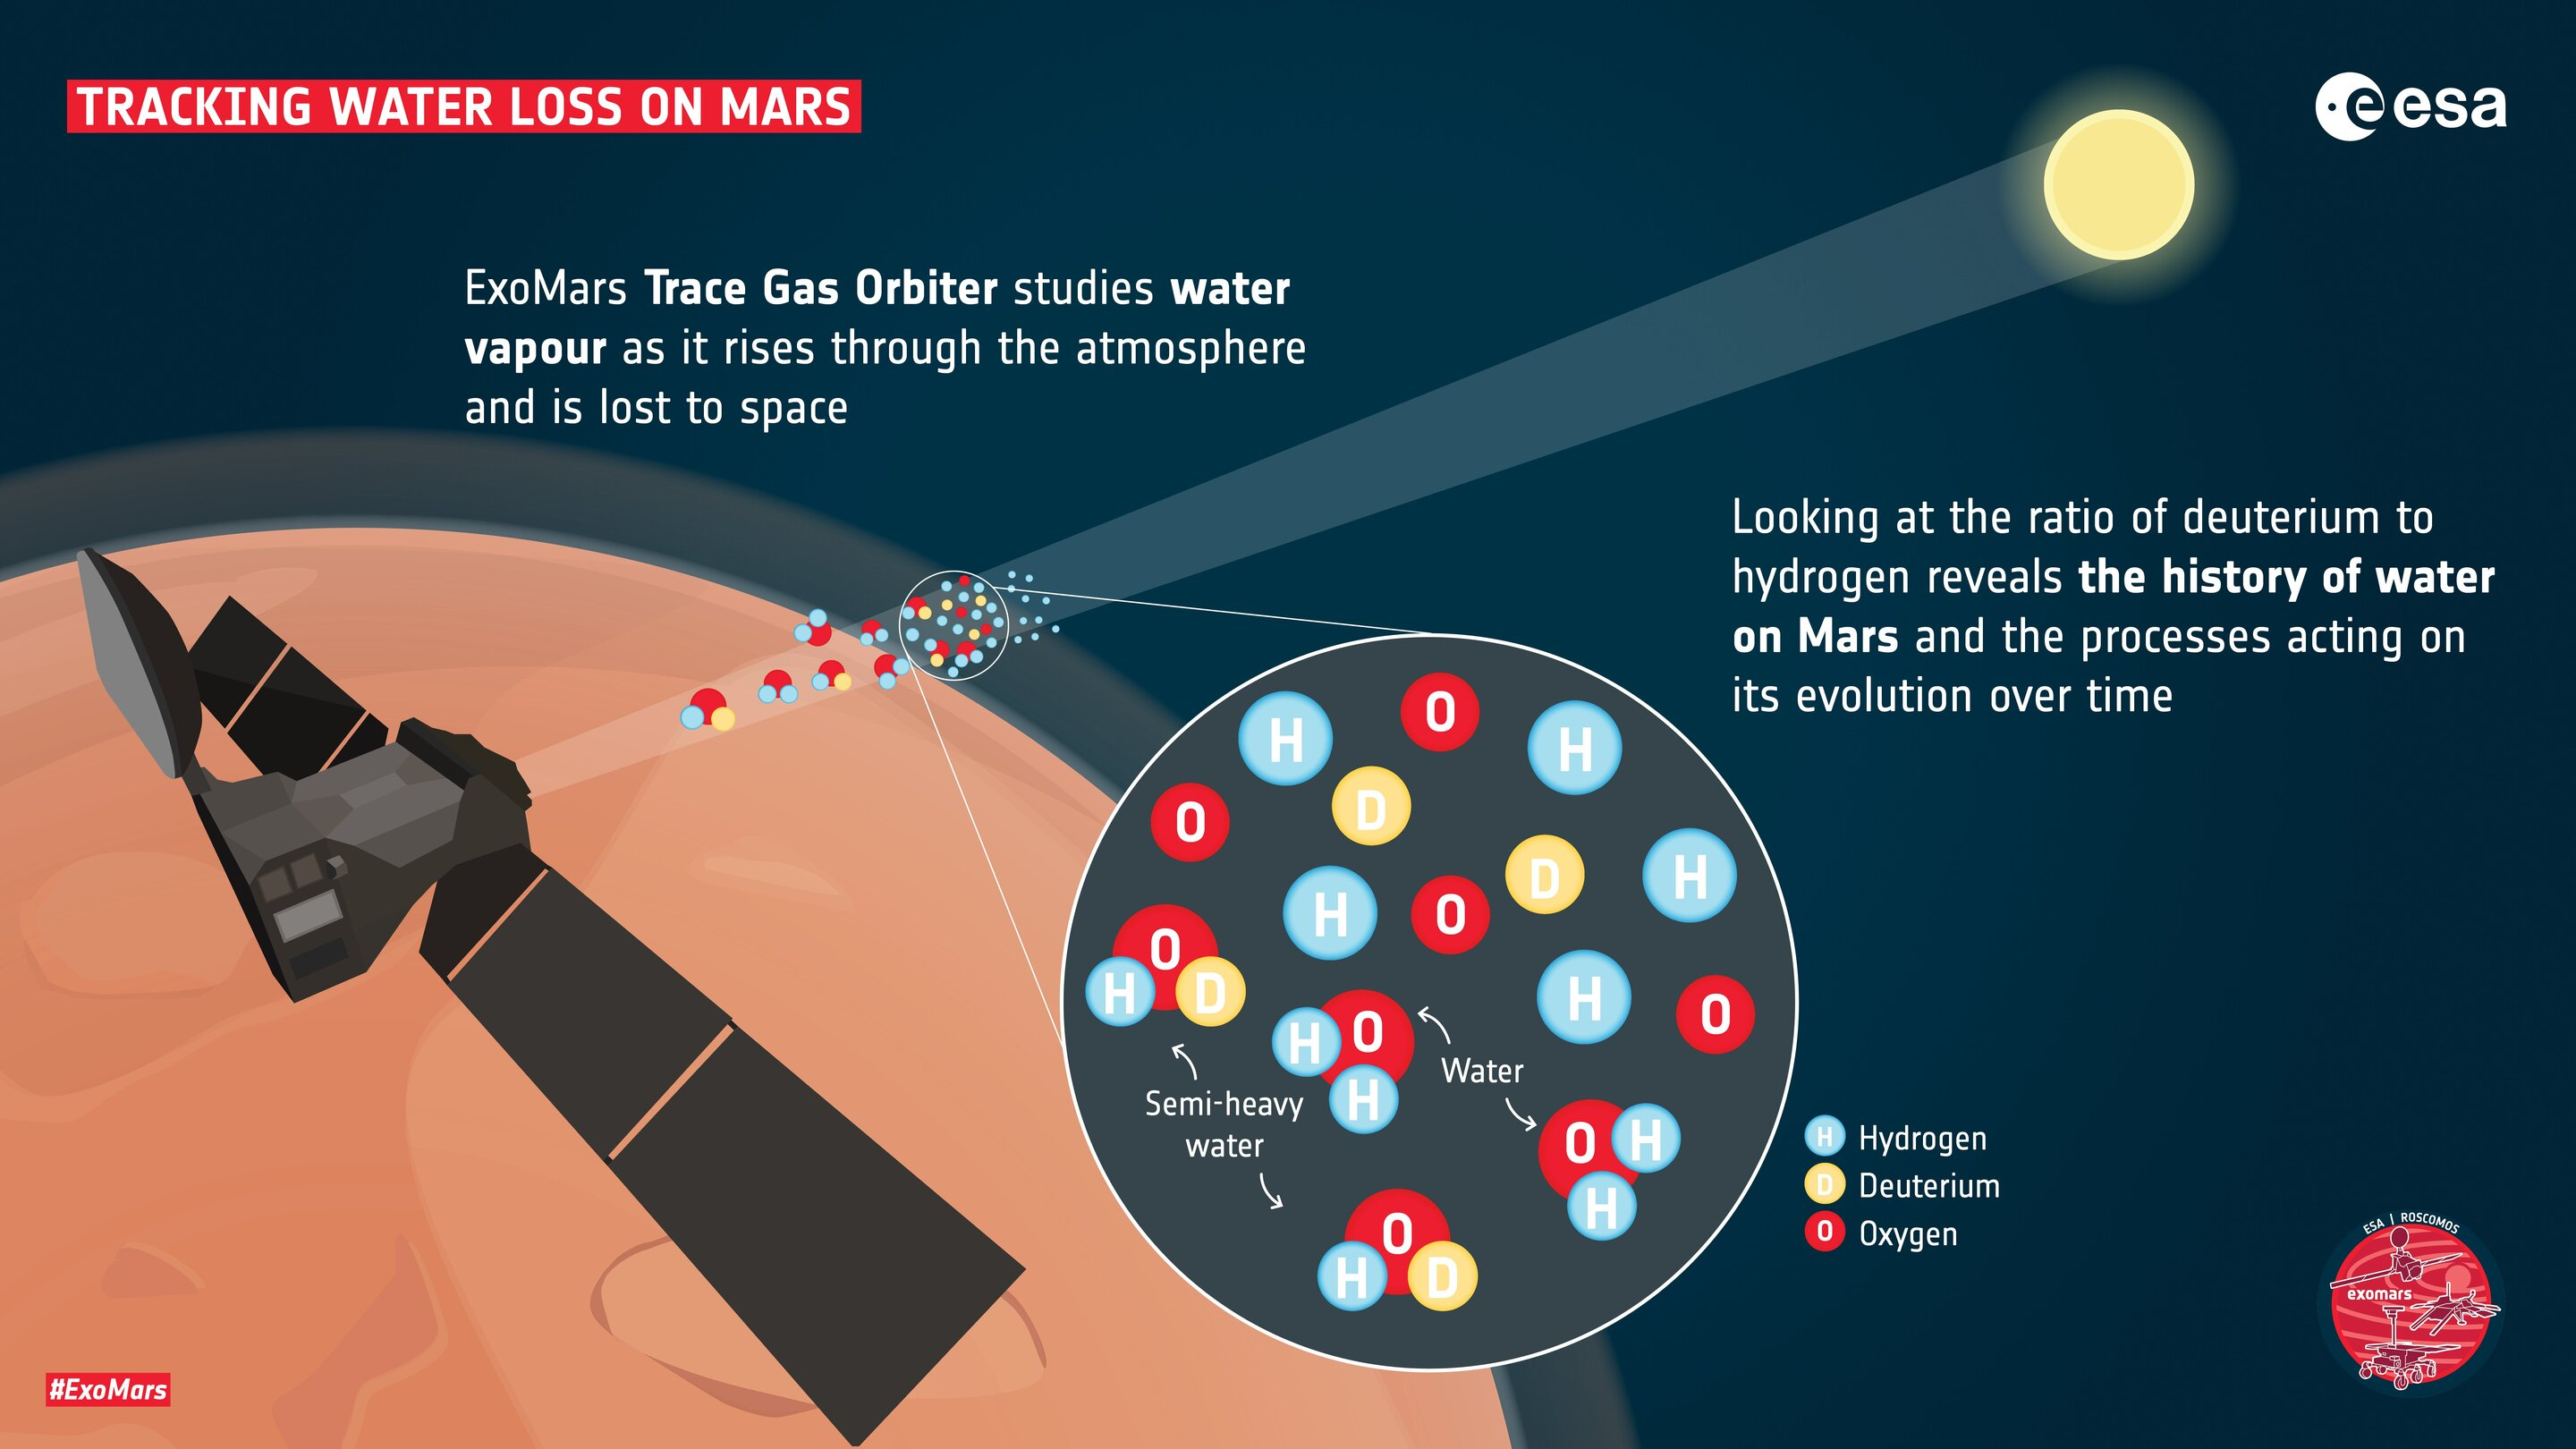 ExoMars discovers new gas and traces water loss on Mars